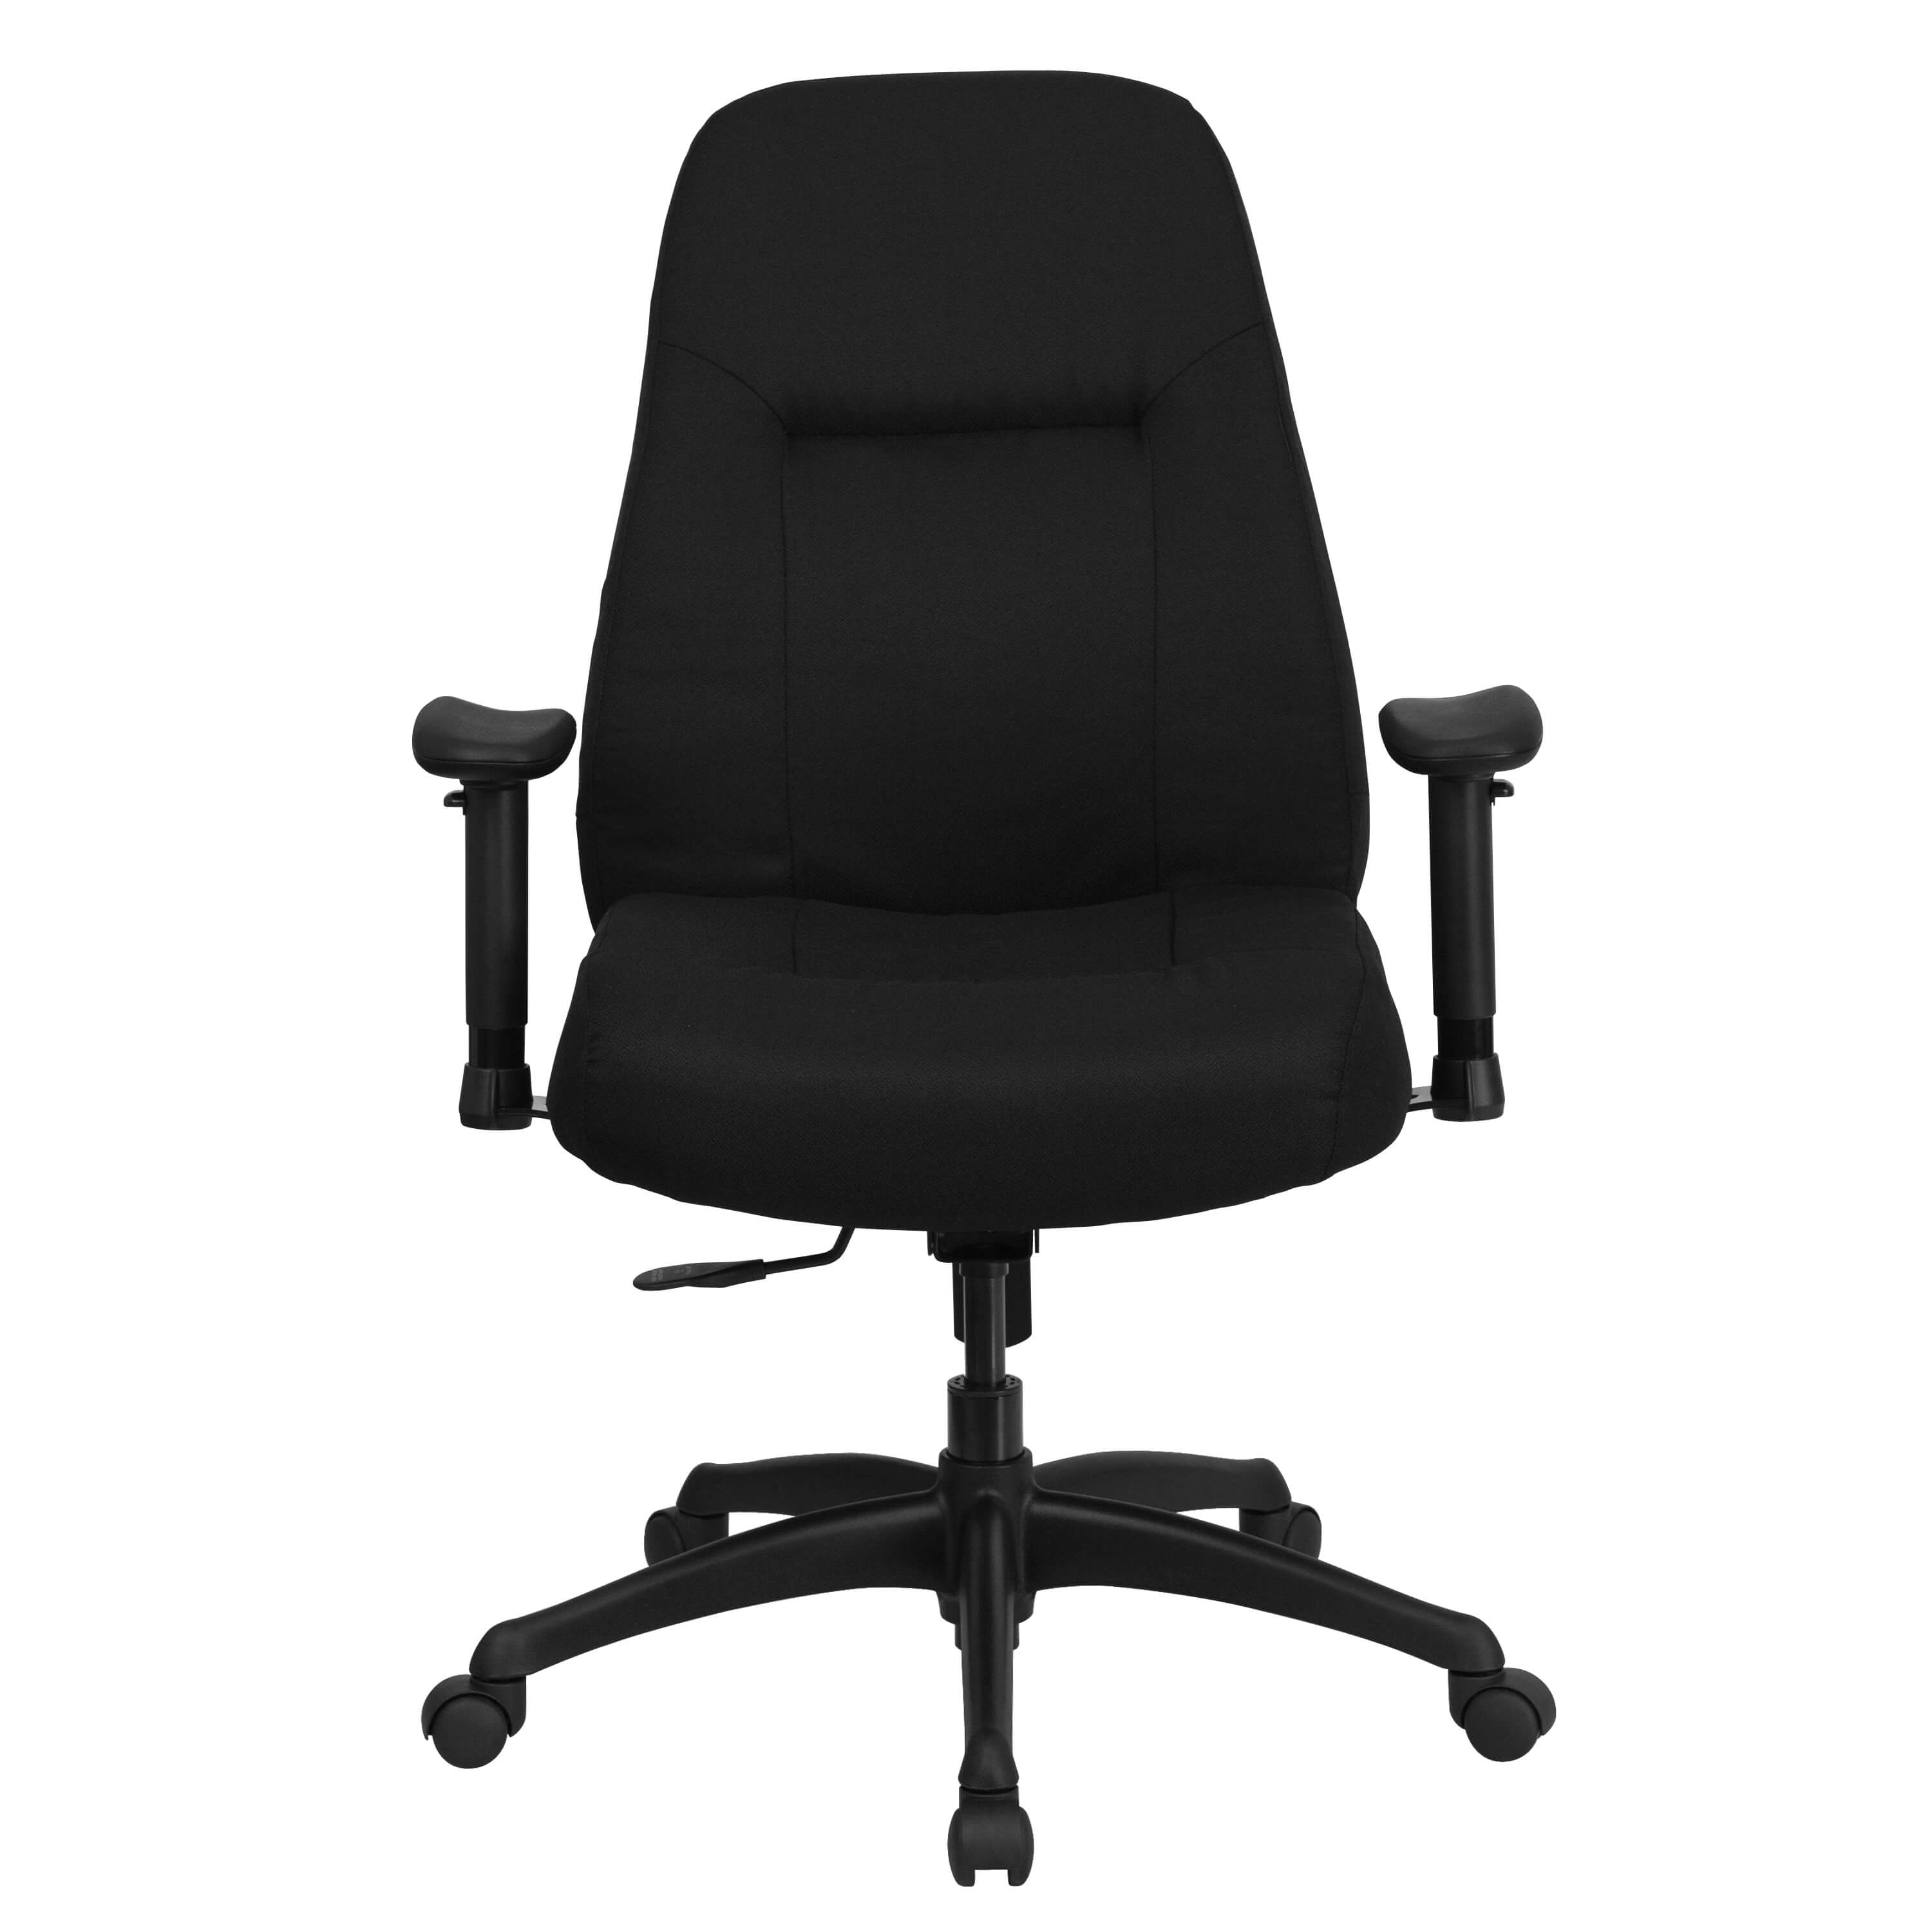 Heavy weight capacity office chair front view